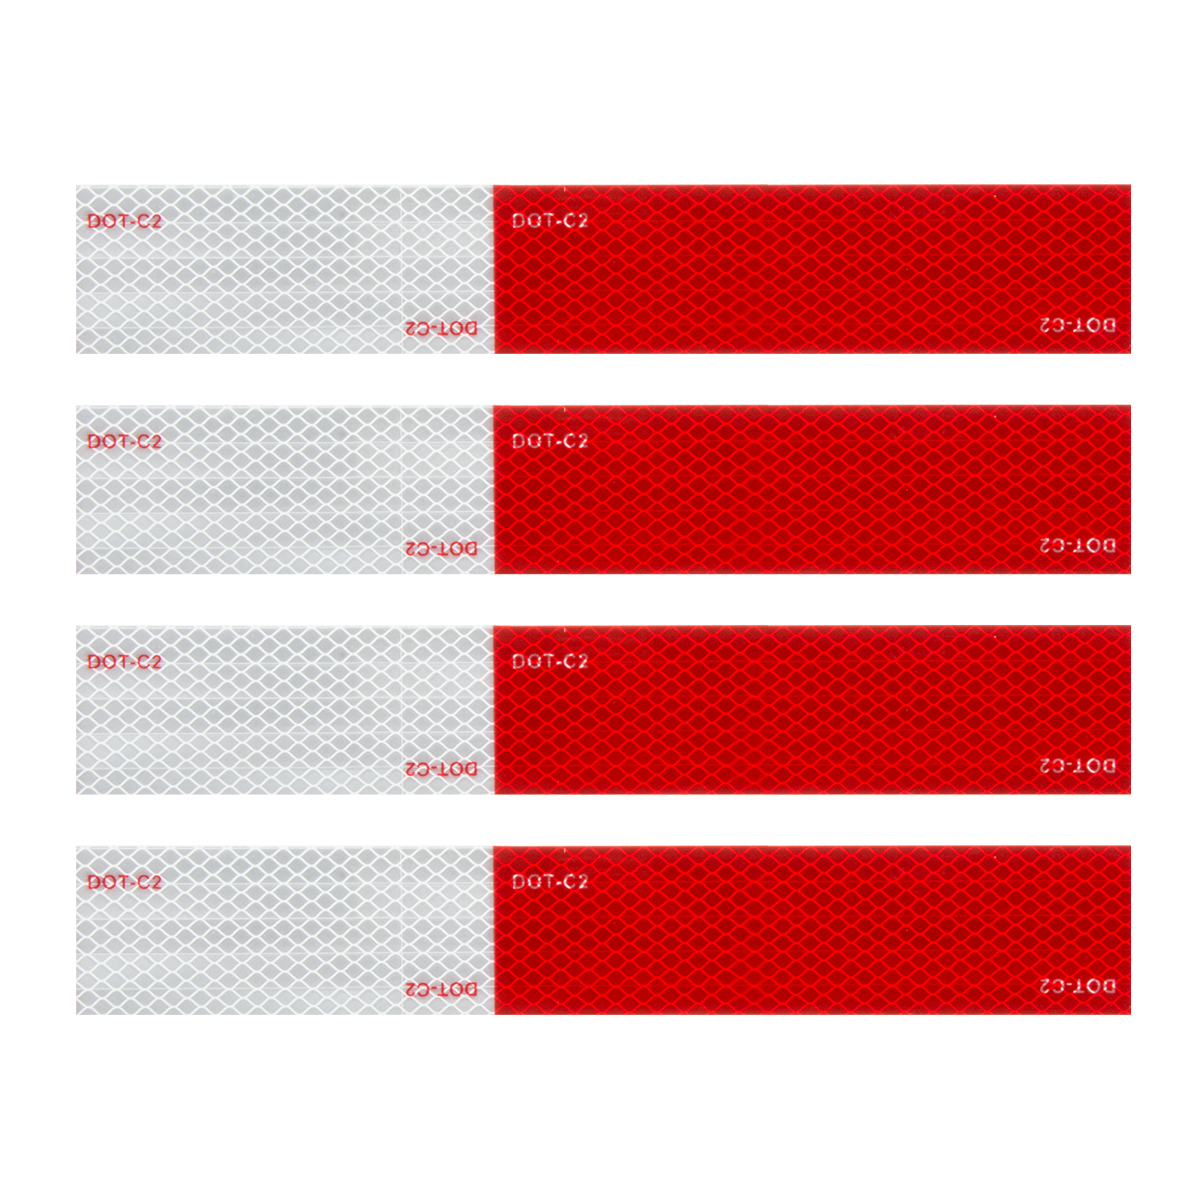 "92293 Premium Hi Viz DOT-C2 Conspicuity Tape in Red & White 18"" Strips"